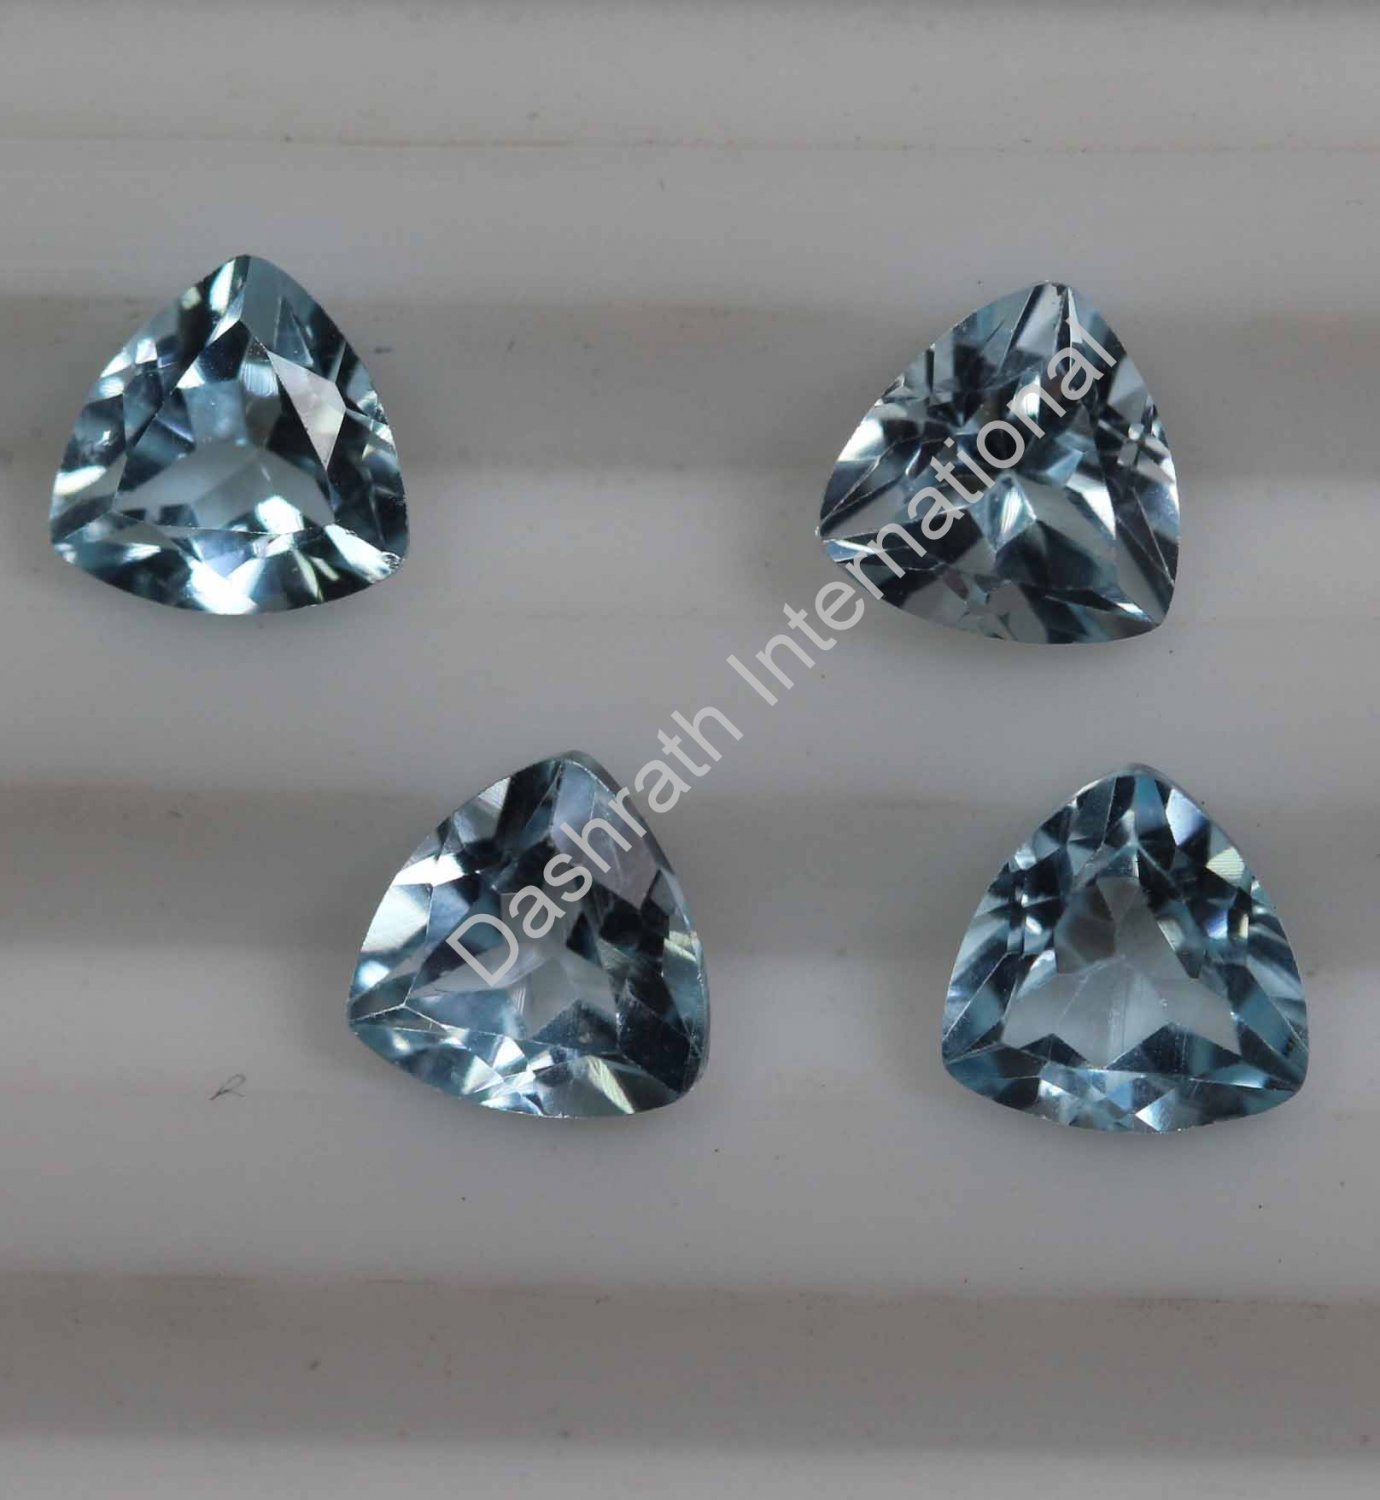 4mm Natural Sky Blue Topaz Faceted Cut Trillion 25 Pieces Lot Top Quality Loose Gemstone